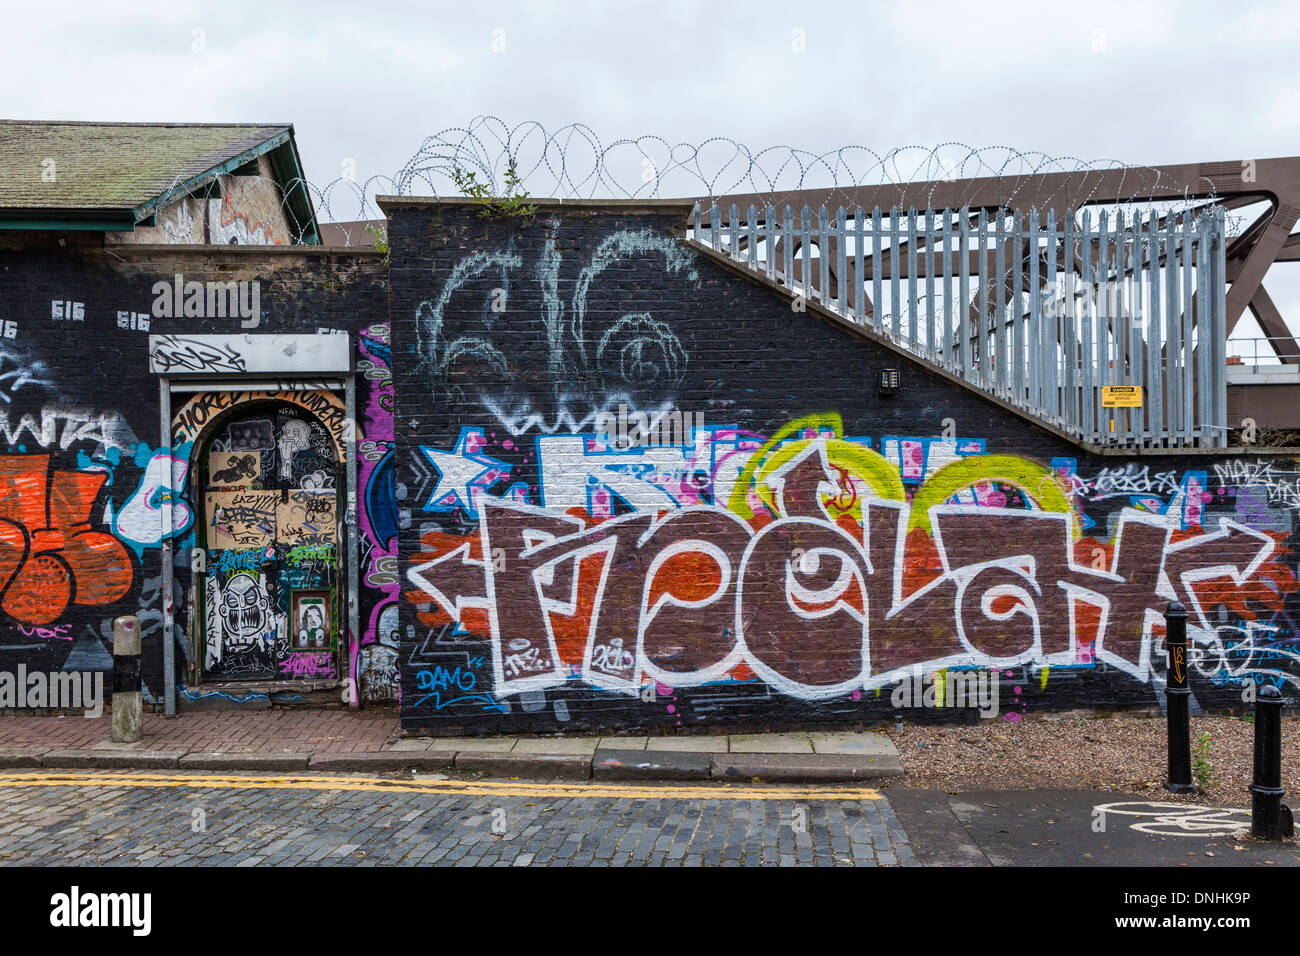 Tags, graffiti, paste ups, barbed wire and fence in Pedley street, off Brick lane, East London, UK - Stock Image